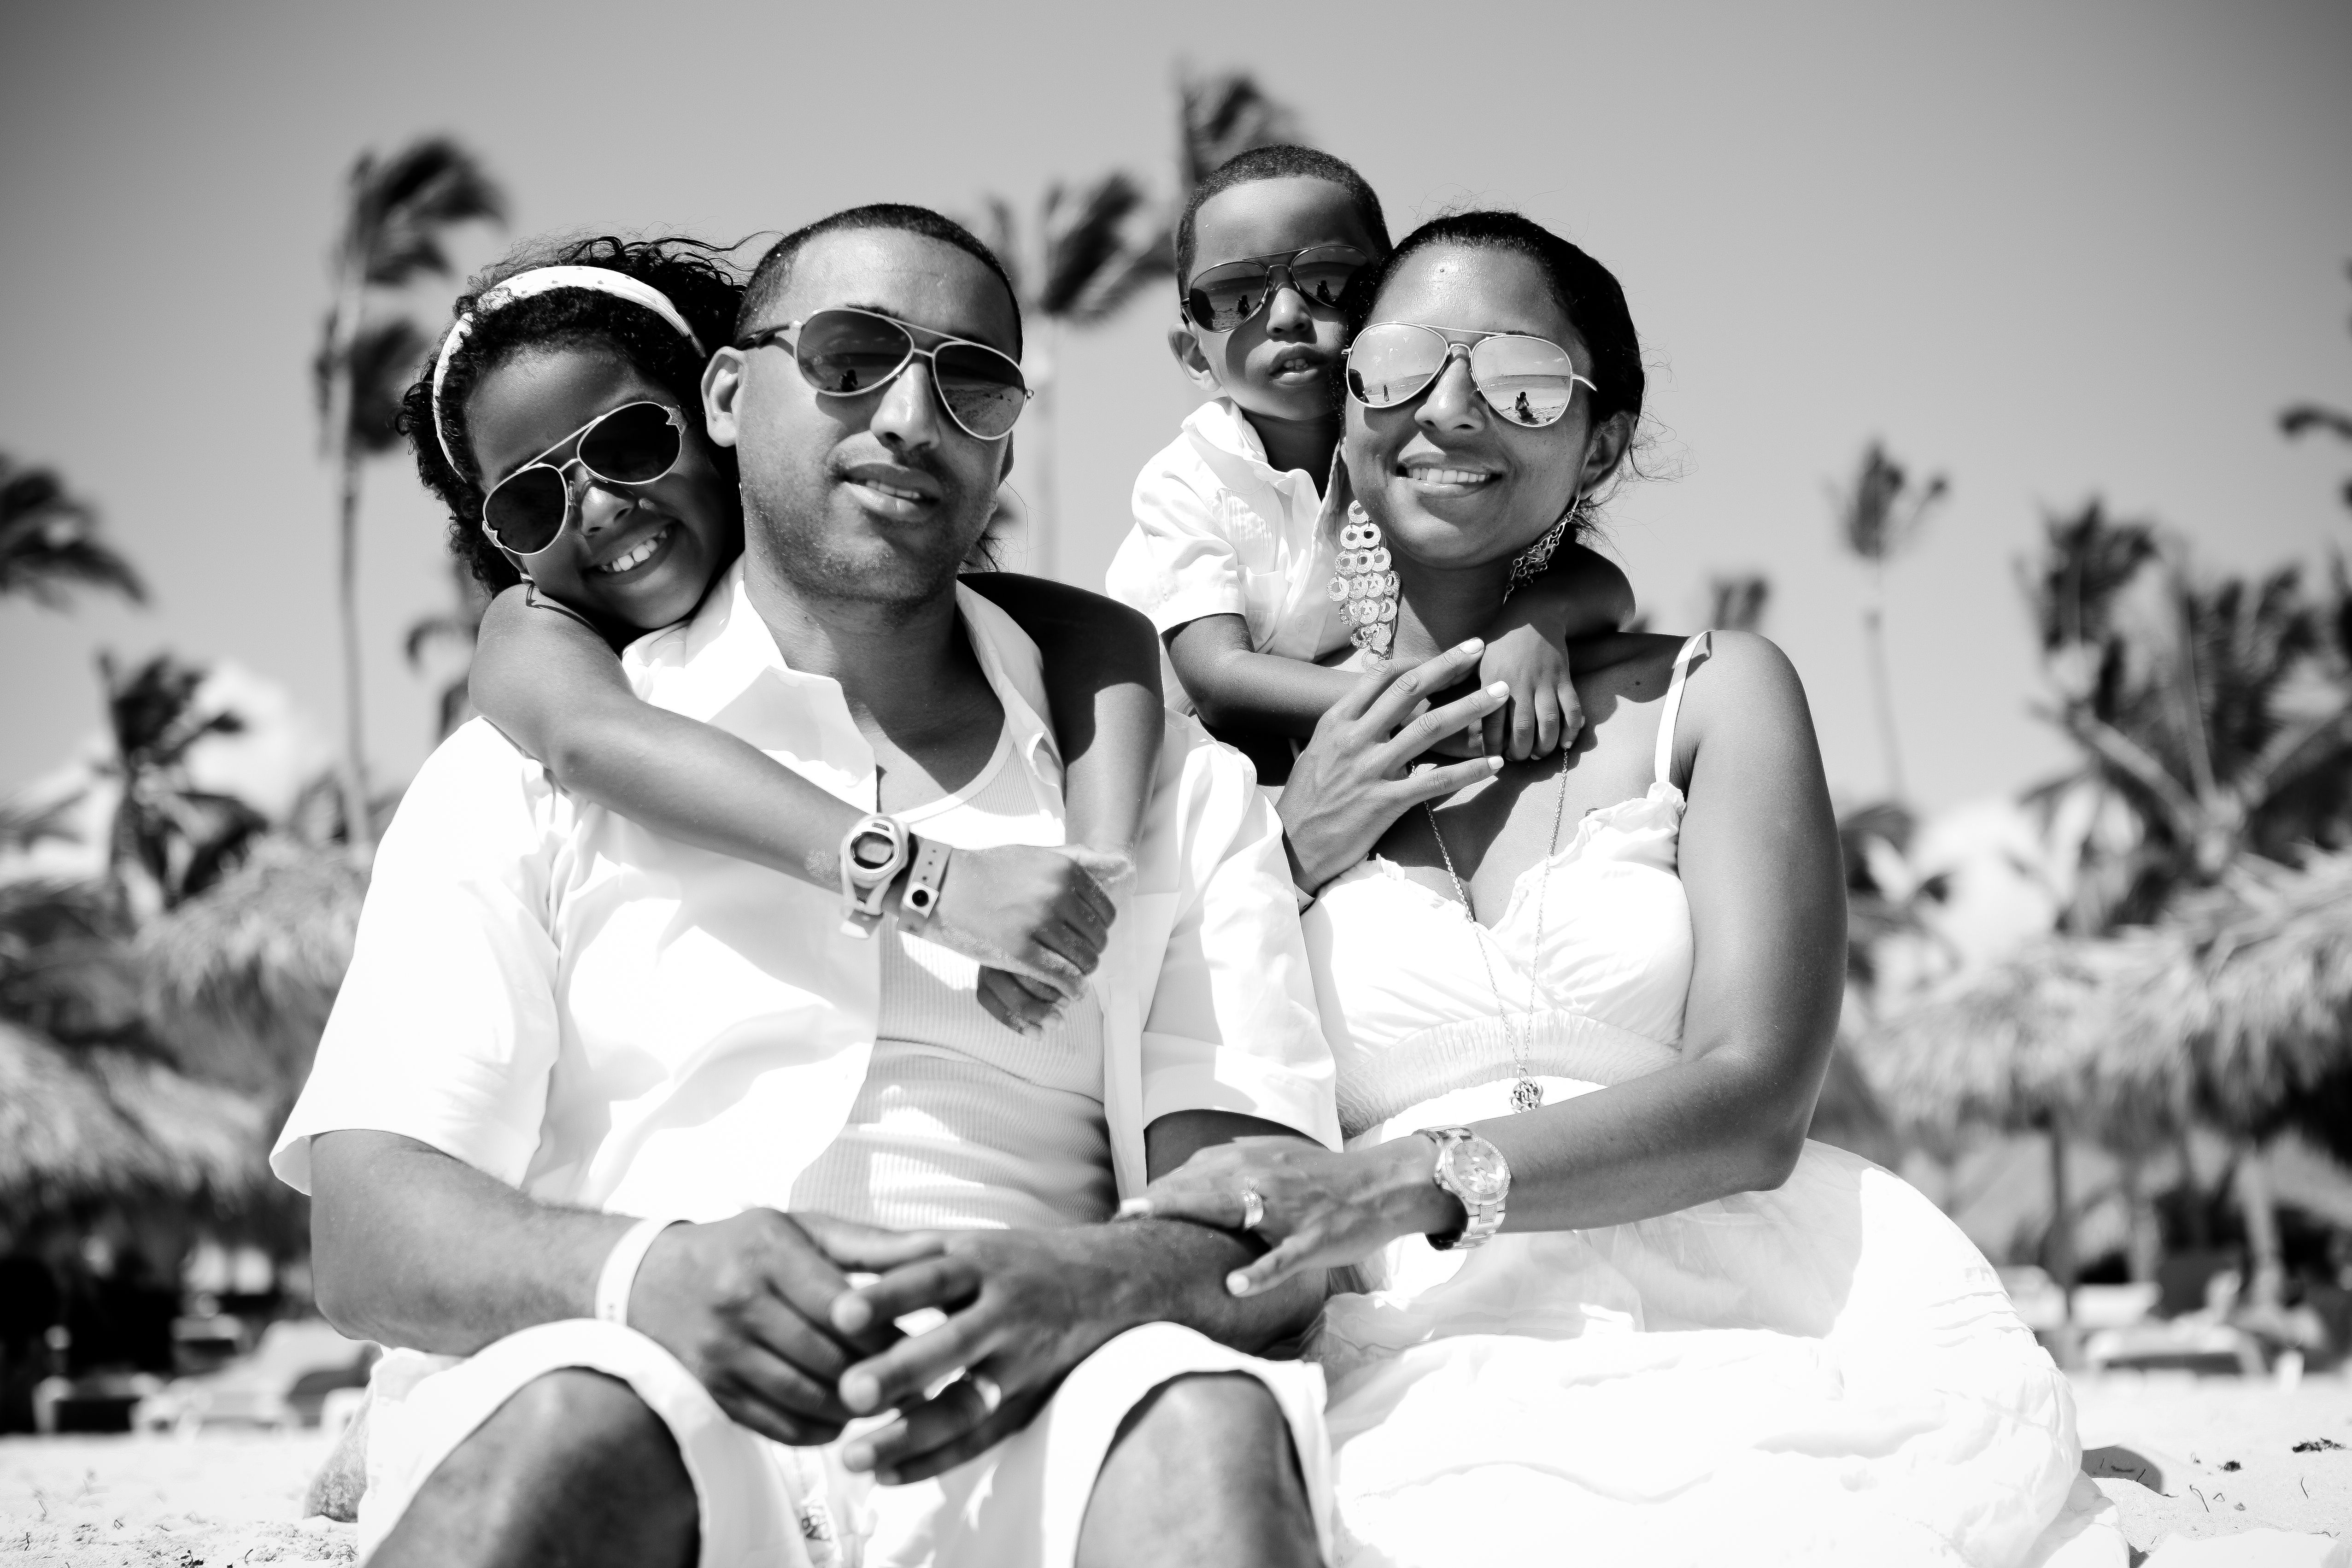 Beach family portrait wearing all white and sunglasses all white family portraits sunglasses